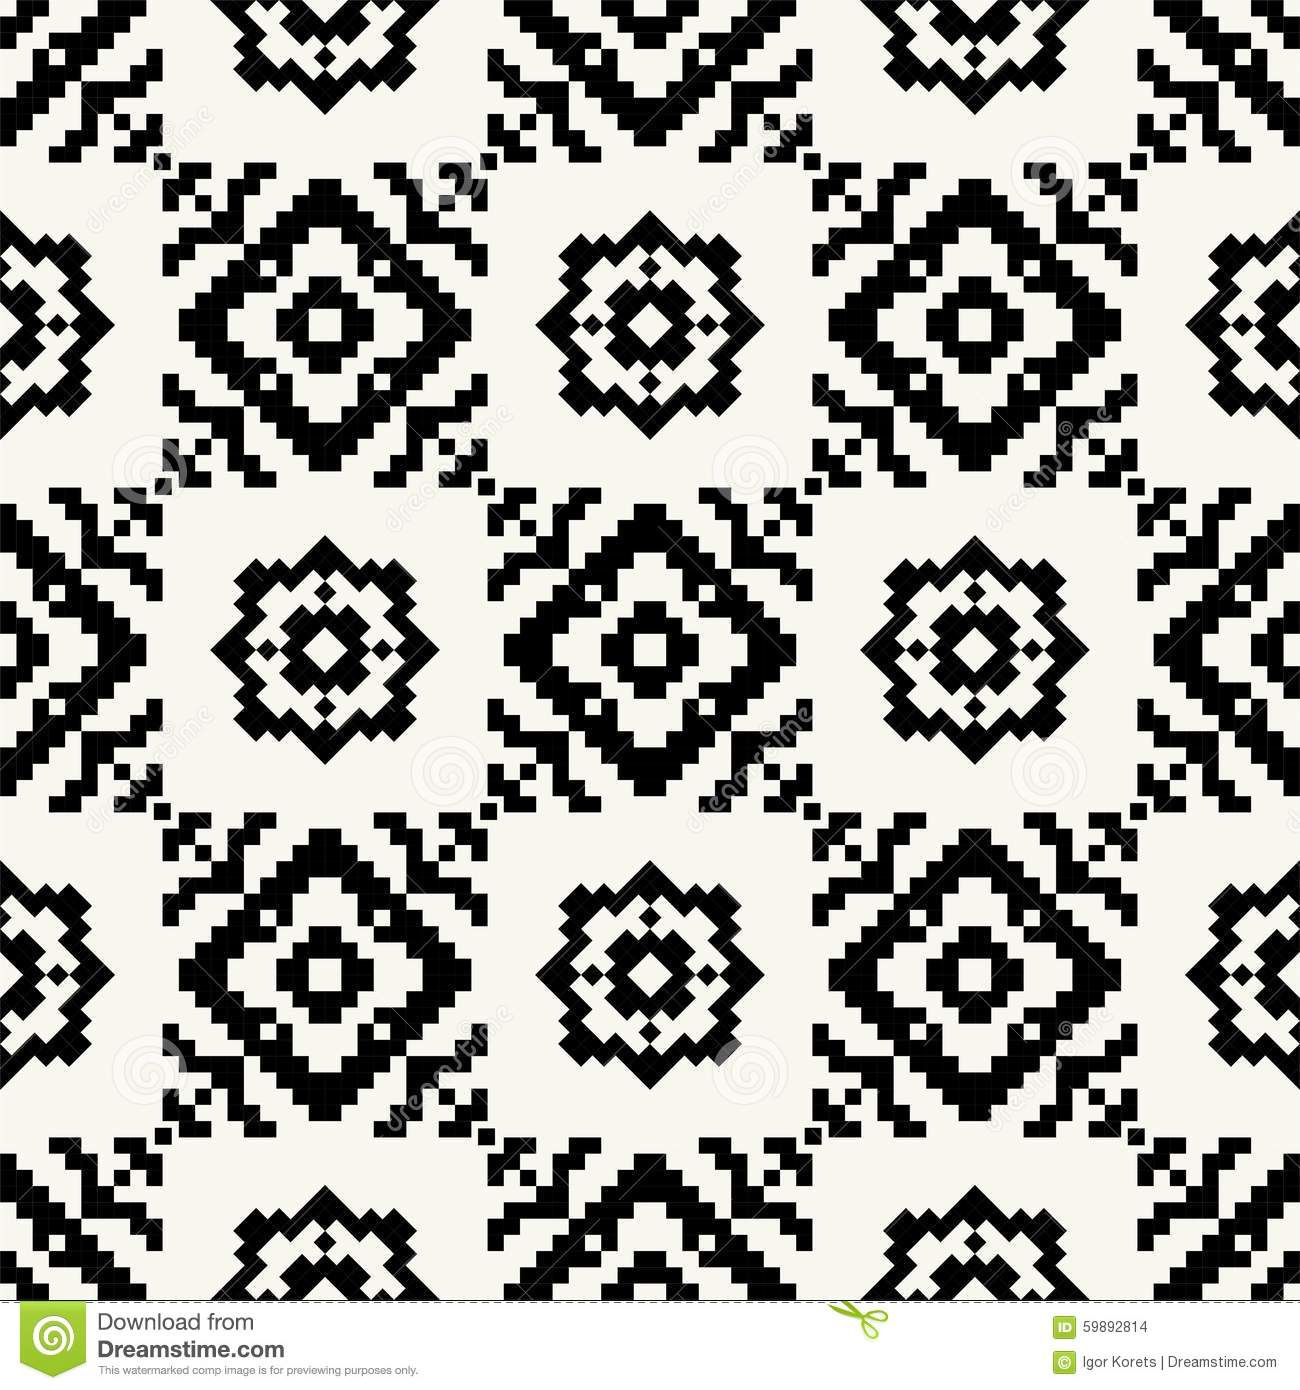 Hand Drawn Shapes Circle Square 13875004 as well Arabesque Vector Pack as well Pattern Of Grey Polka Dots On A White Background H7ymgopxobj6gtredf likewise Abstract Background With Dots That Make Up A Circle 904973 likewise Stock Illustration Pentagon Abstract Dots Trendy Art Geometric Frame Modern Shapes D Polygonal Logo Futuristic Technology Style Halftone Image84420286. on geometric shapes background